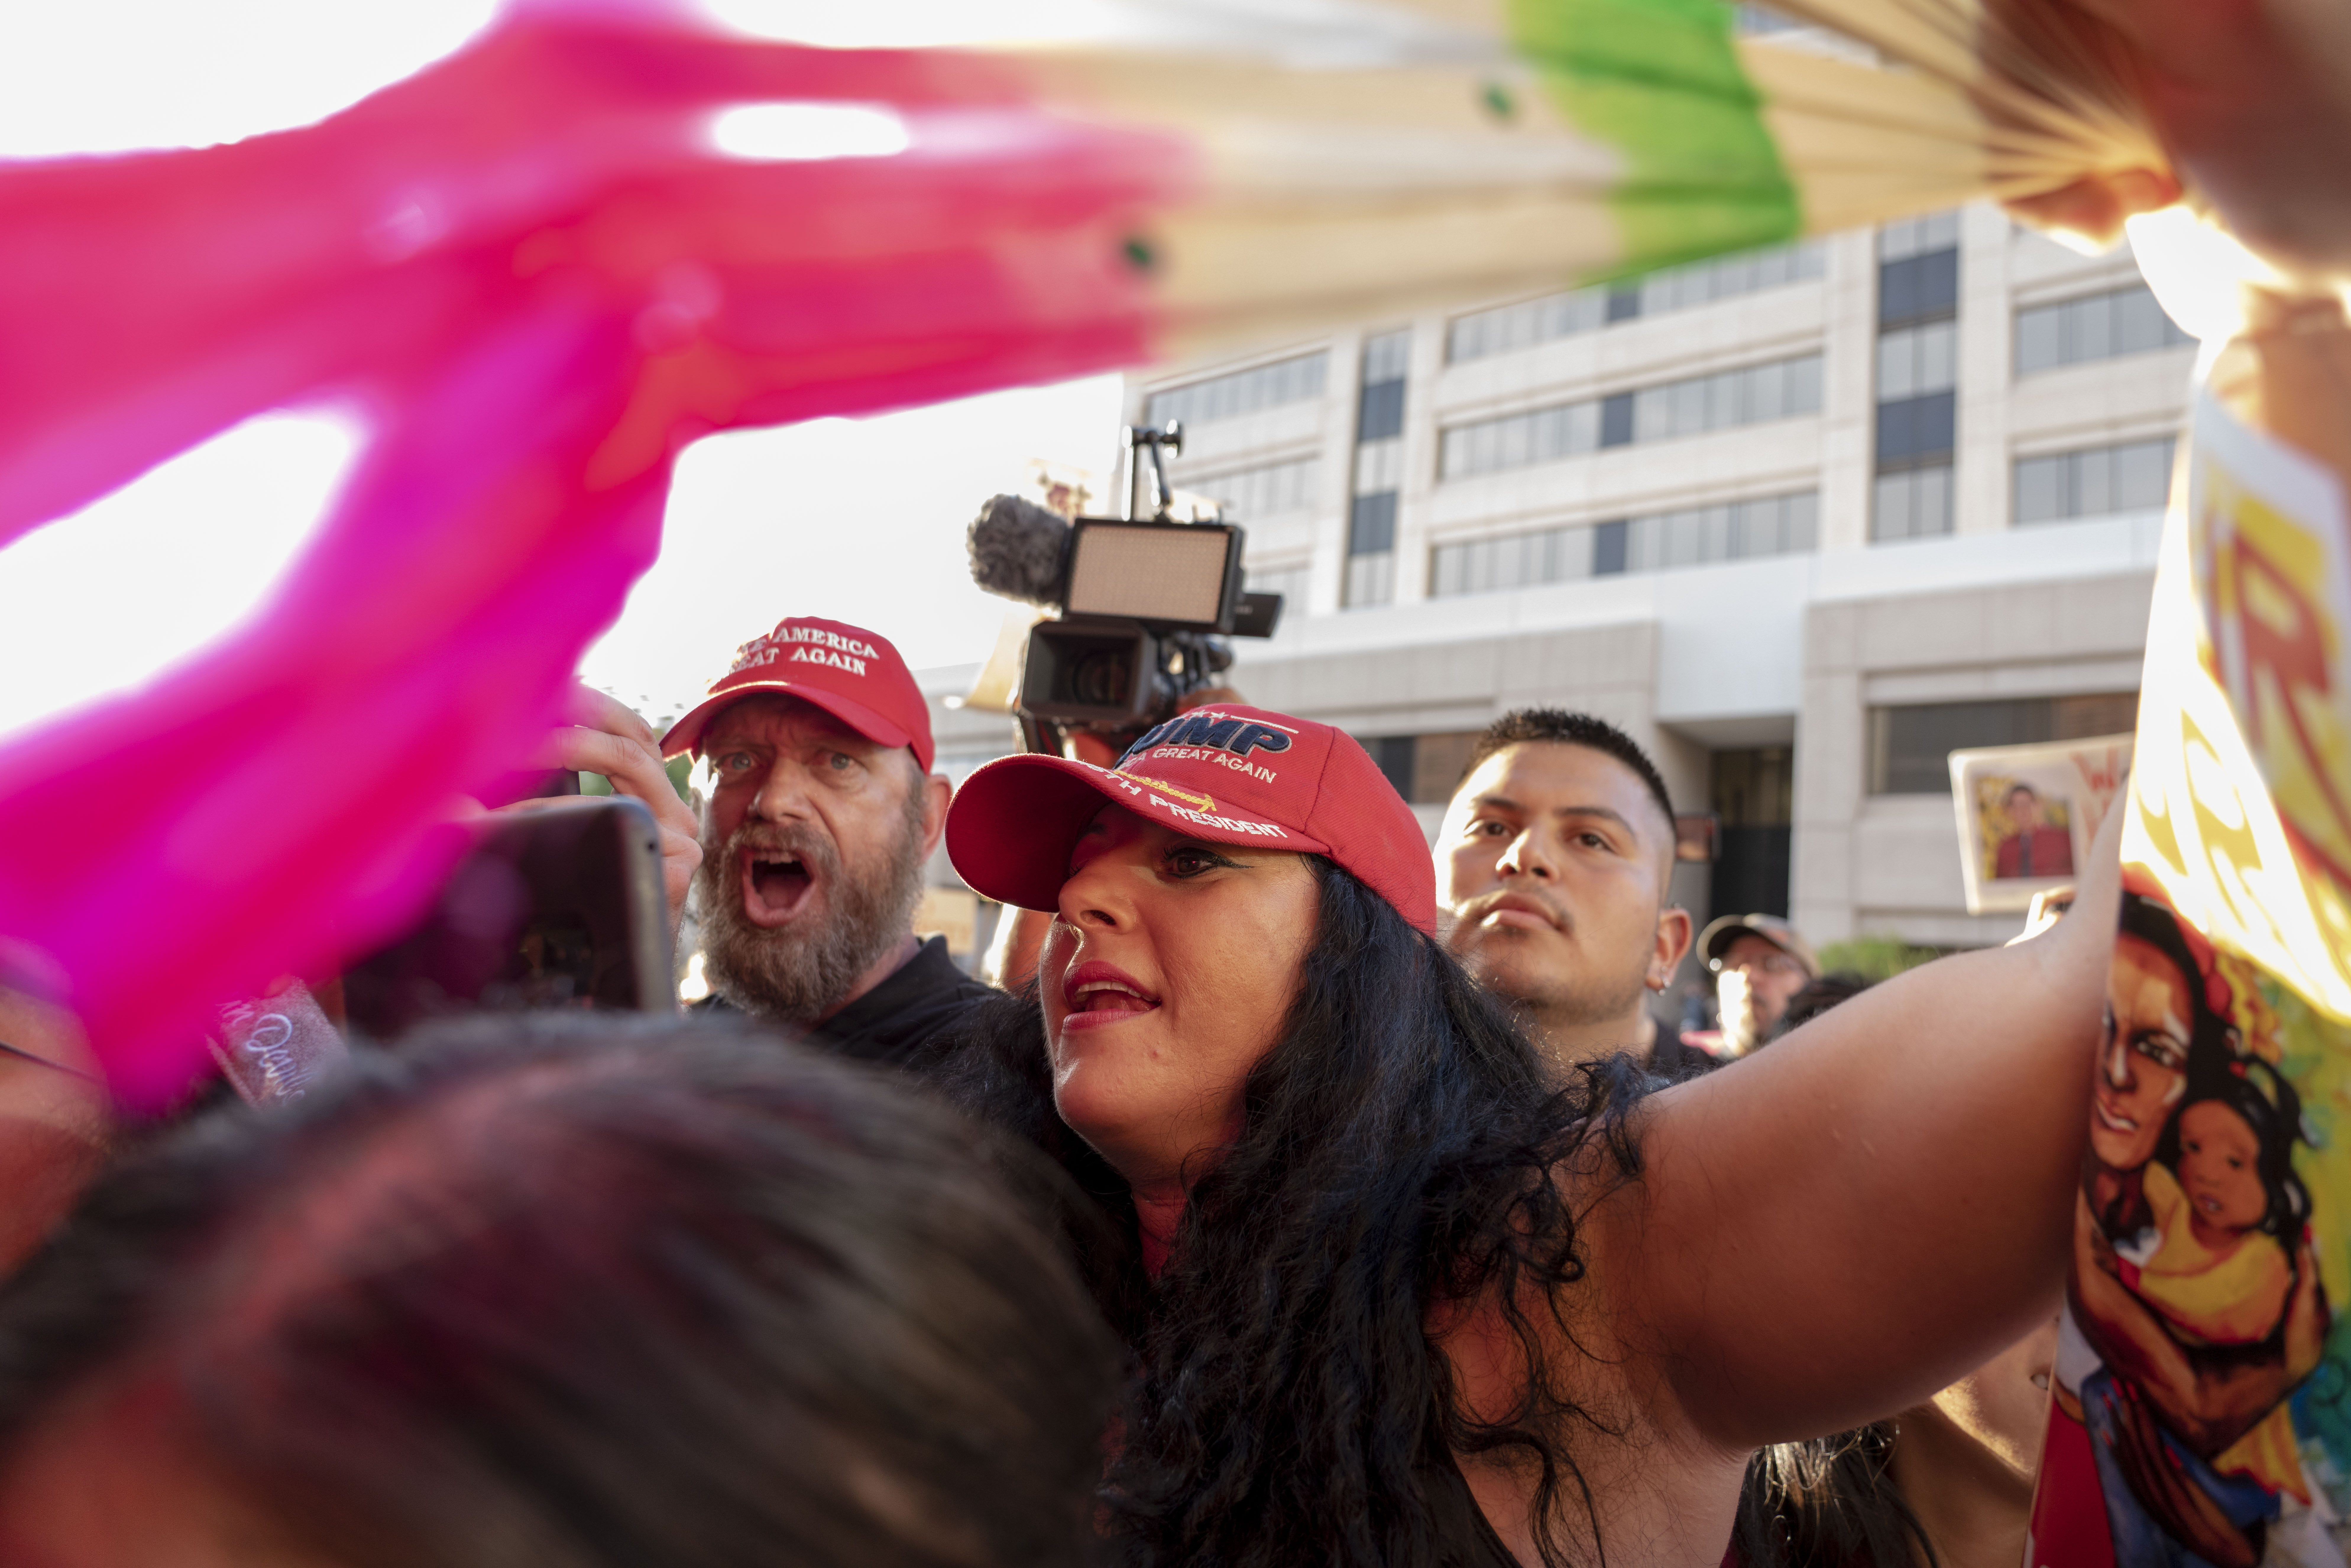 Trump supporter Jennifer Harrison, then of the Patriot Movement AZ group argues with Puente Human Rights Movement members about families impacted by immigration enforcement, outside of the 4th Ave Jail in Phoenix on Aug. 22, 2018.